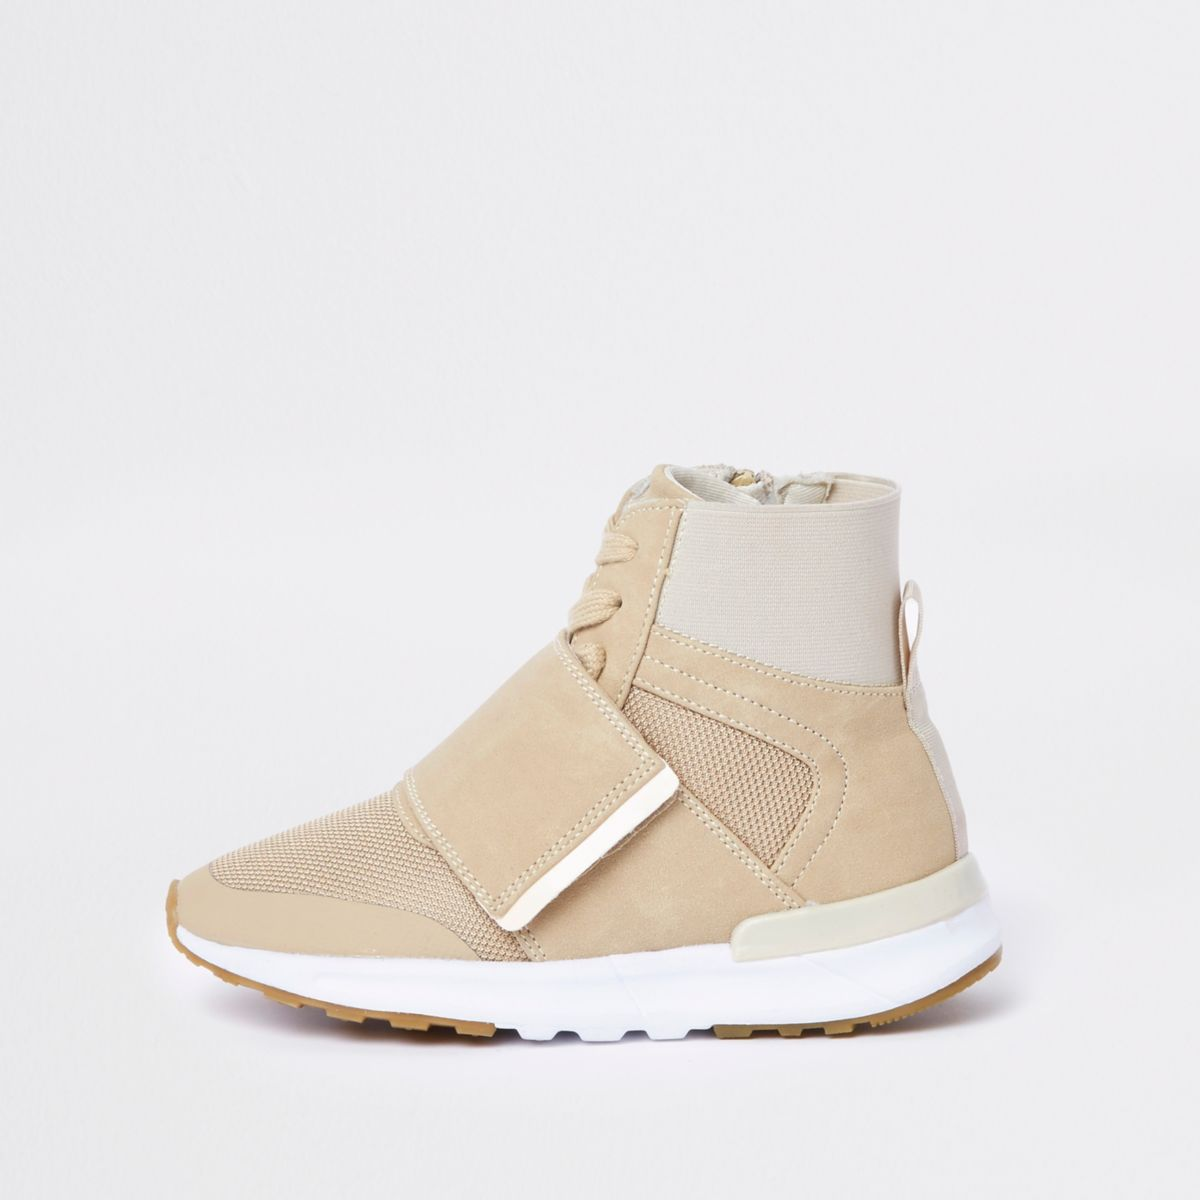 Kids beige high top sports sneakers